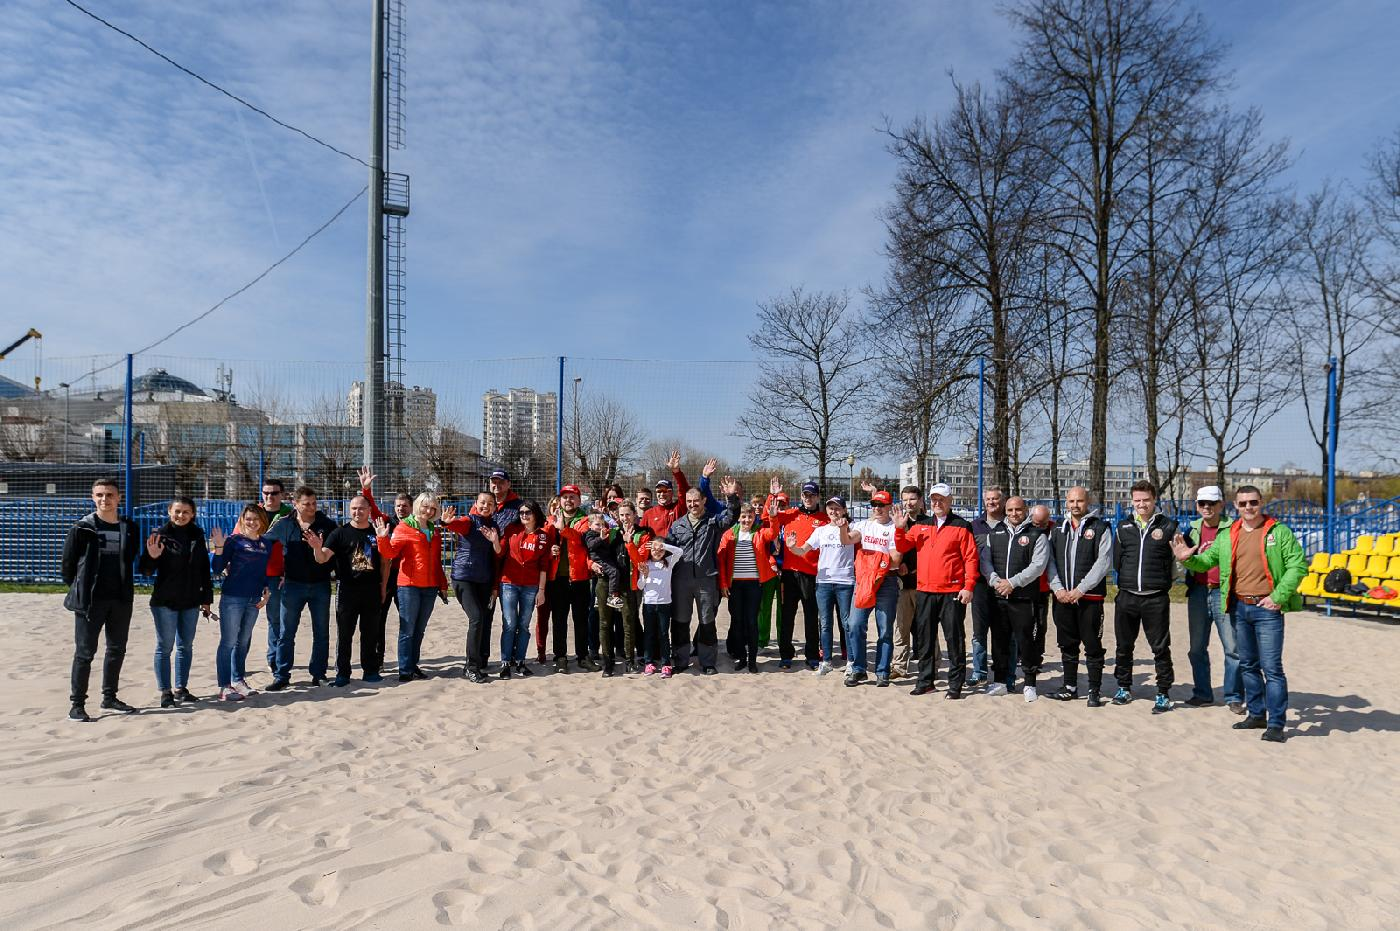 On April 20 the NOC Belarus took part in the community work day